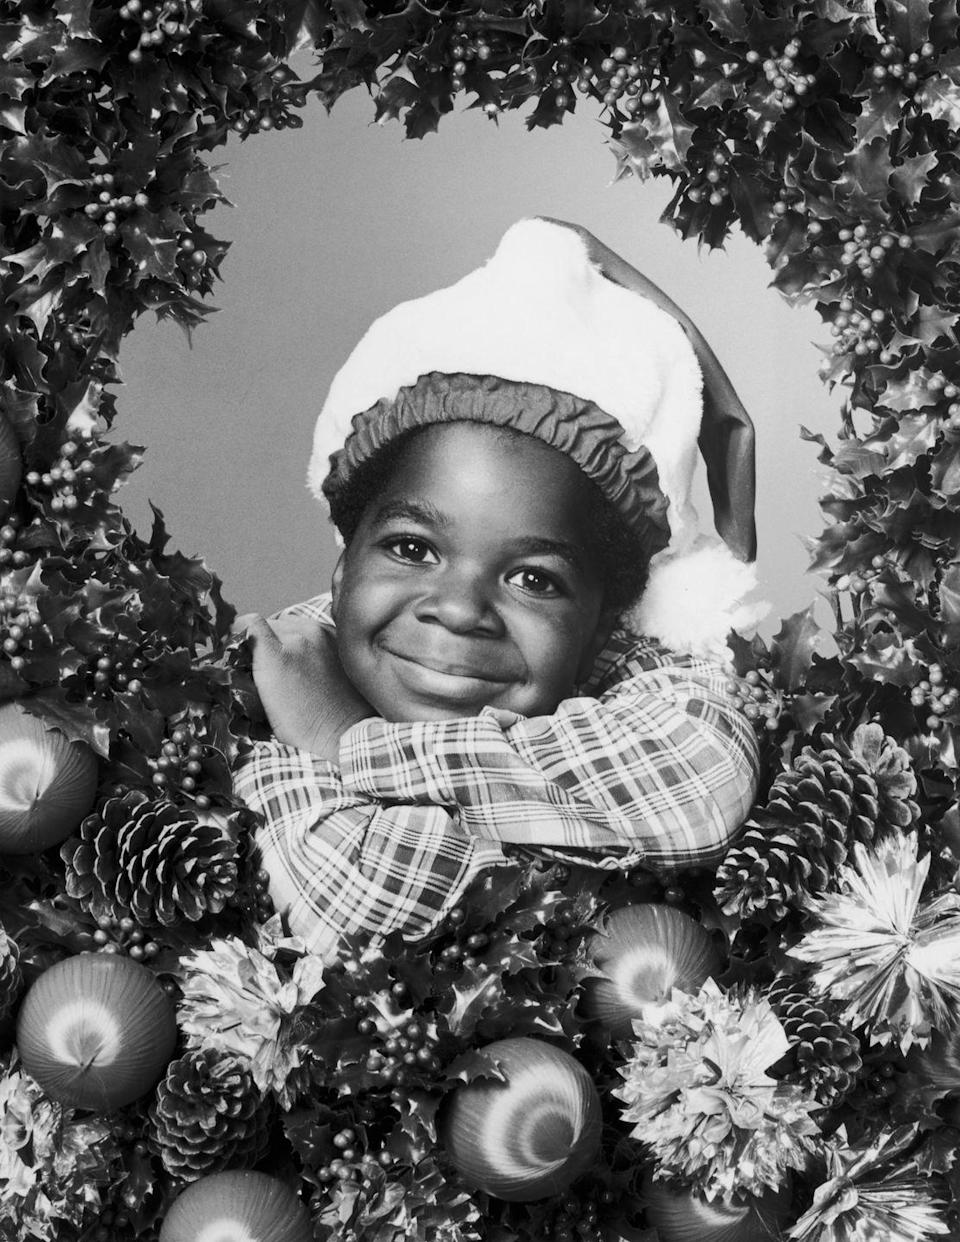 <p>Gary Coleman posed inside a Christmas wreath in 1979, wearing a plaid flannel shirt and a Santa hat. The <em>Diff'rent Strokes </em>star was all smiles for the upcoming holiday season.</p>